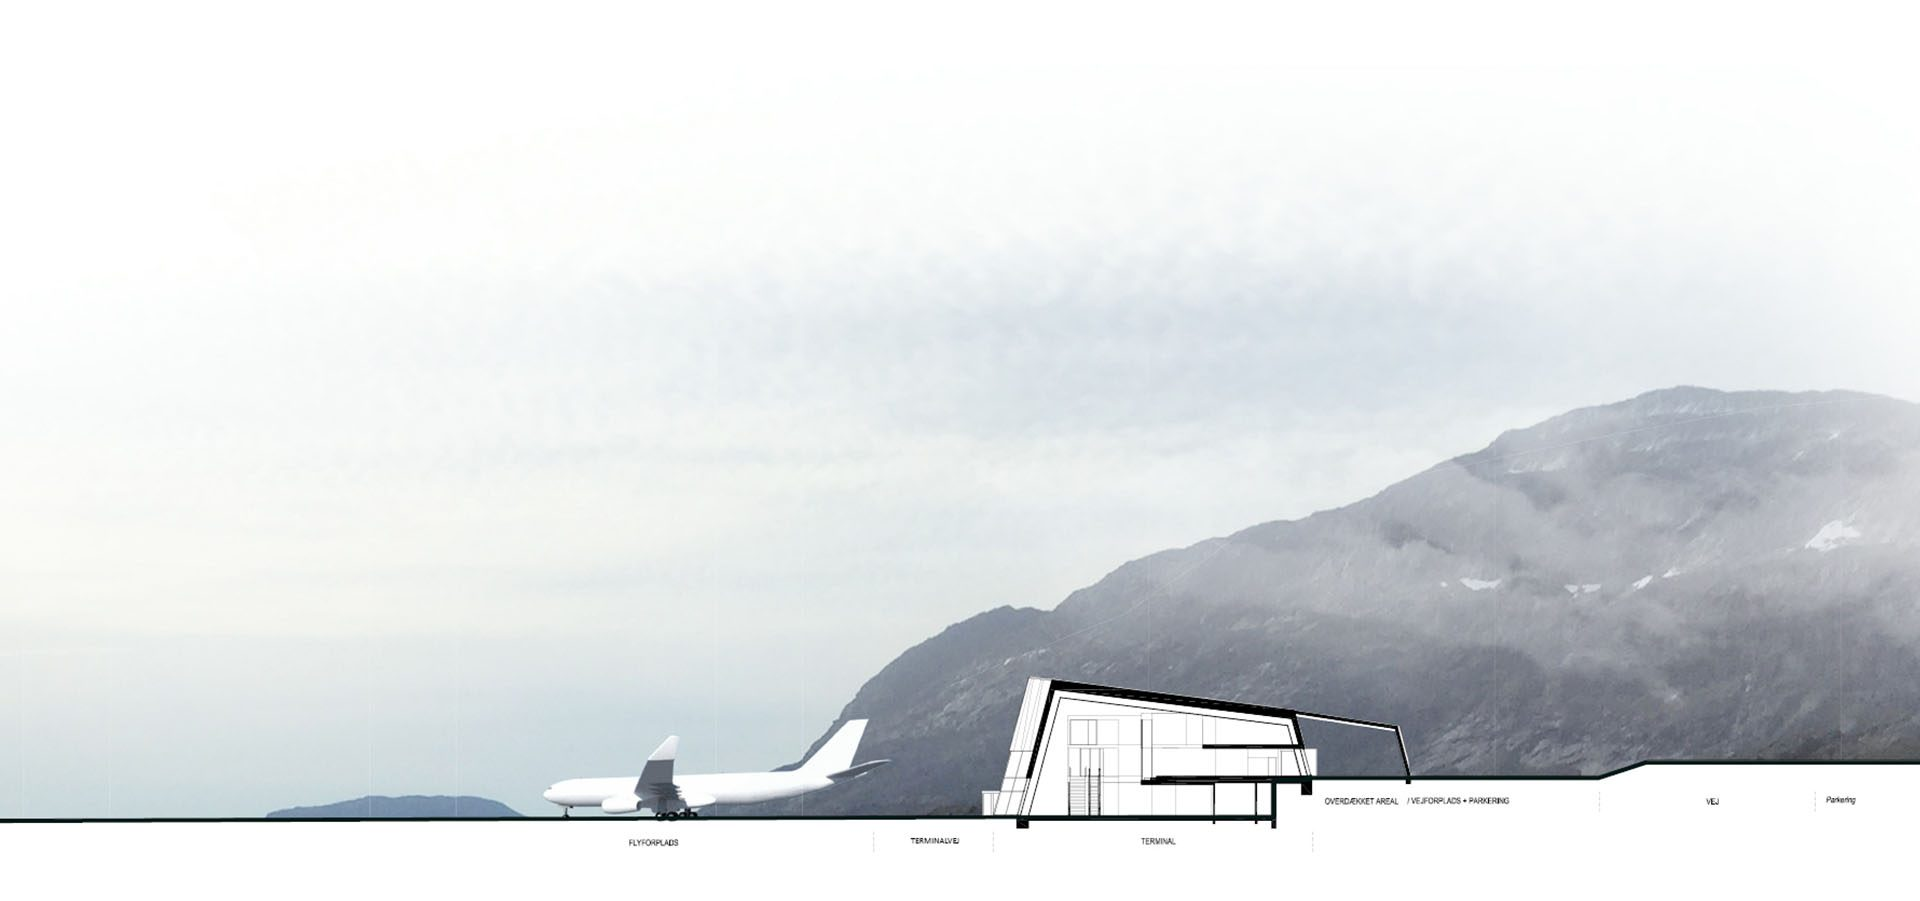 ZESO CONNECTIVITY / Greenland Airport Nuuk